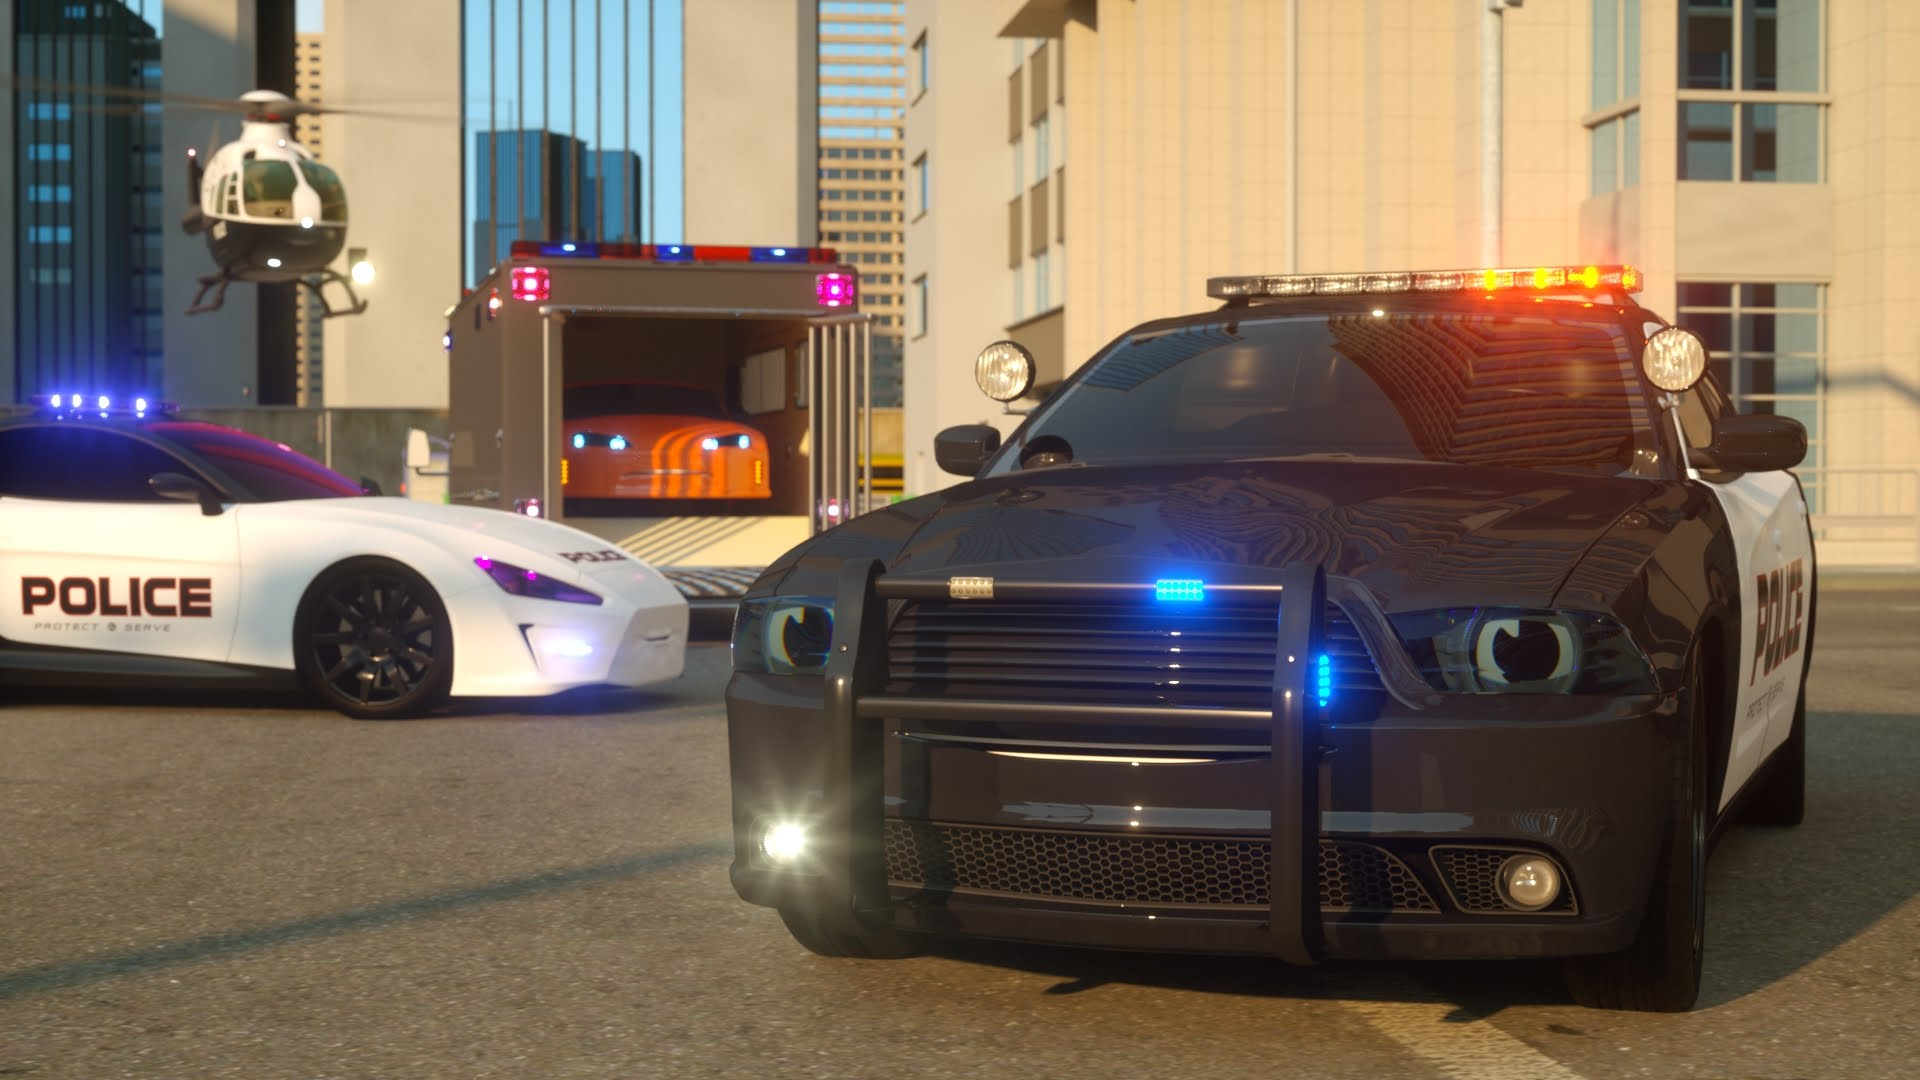 Sergeant Cooper the Police Car – Real City Heroes